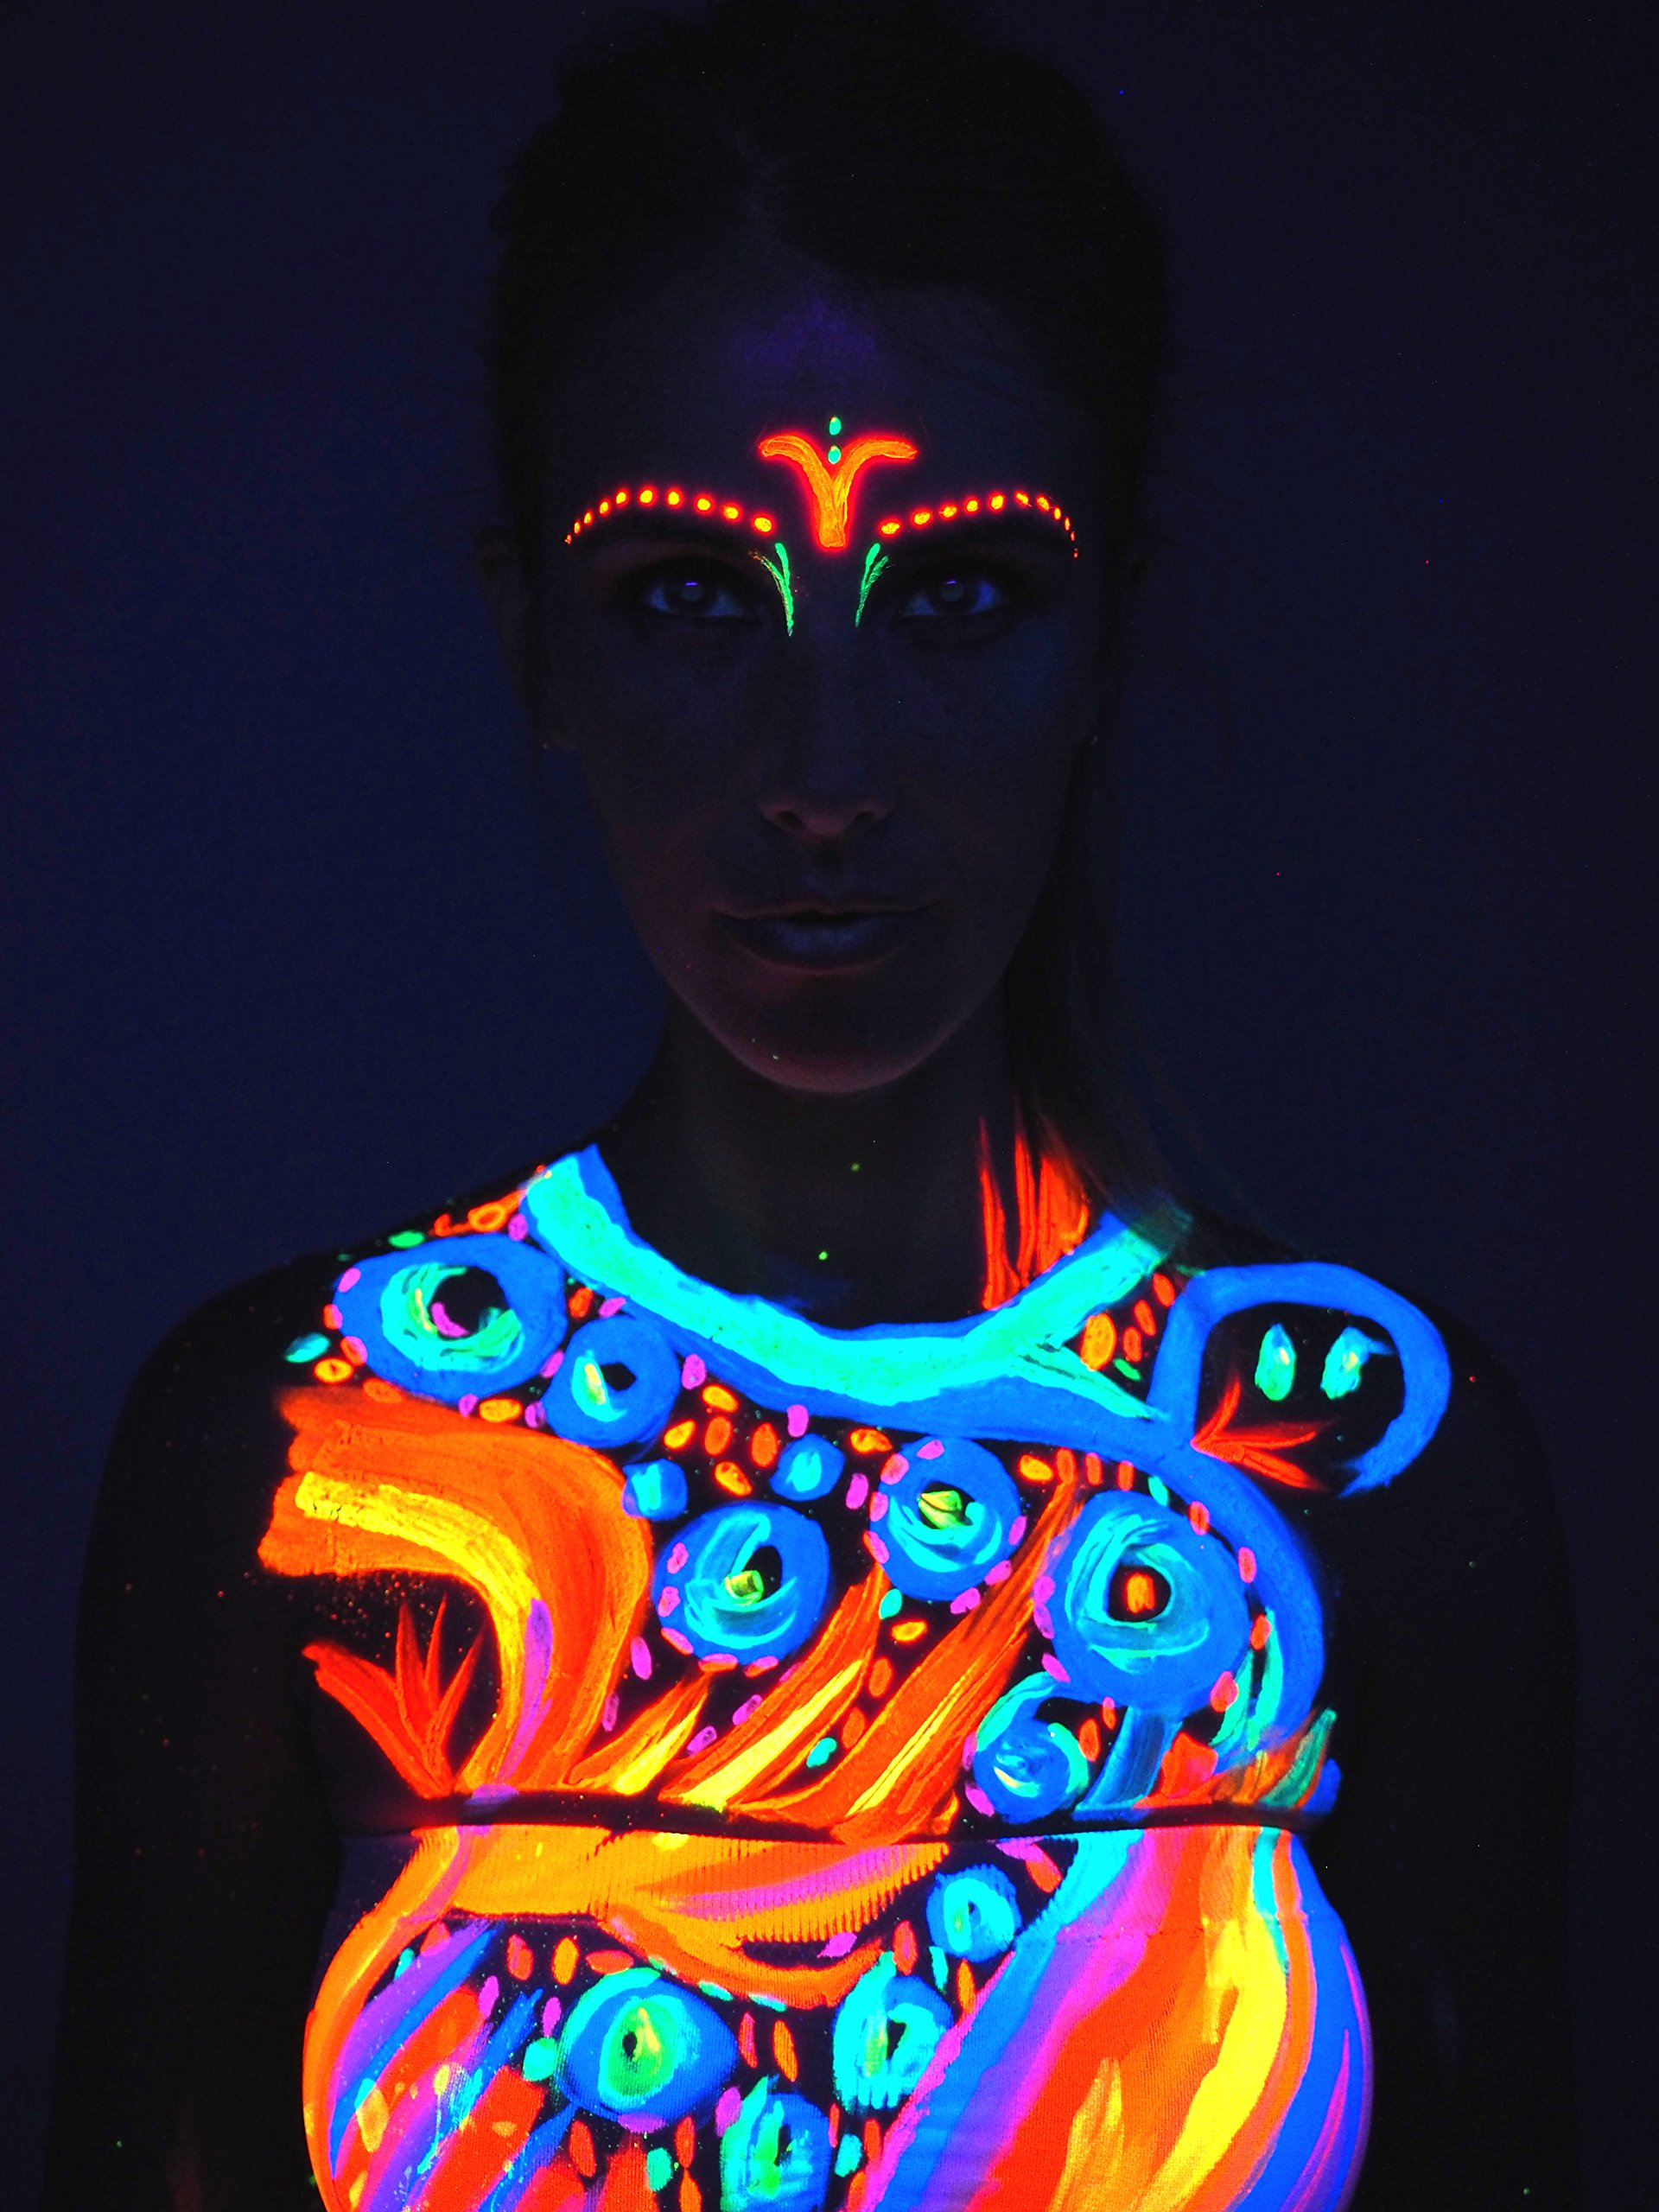 Neon Glow Blacklight Body Paint #1 Premium Set (6 pack of 2 oz. bottles) Glows Brighter, UV Reactive- Safe and Non-Toxic! Fluorescent Set Dries Quickly, Goes on Smooth, Not Clumpy by Neon Glow (Image #5)